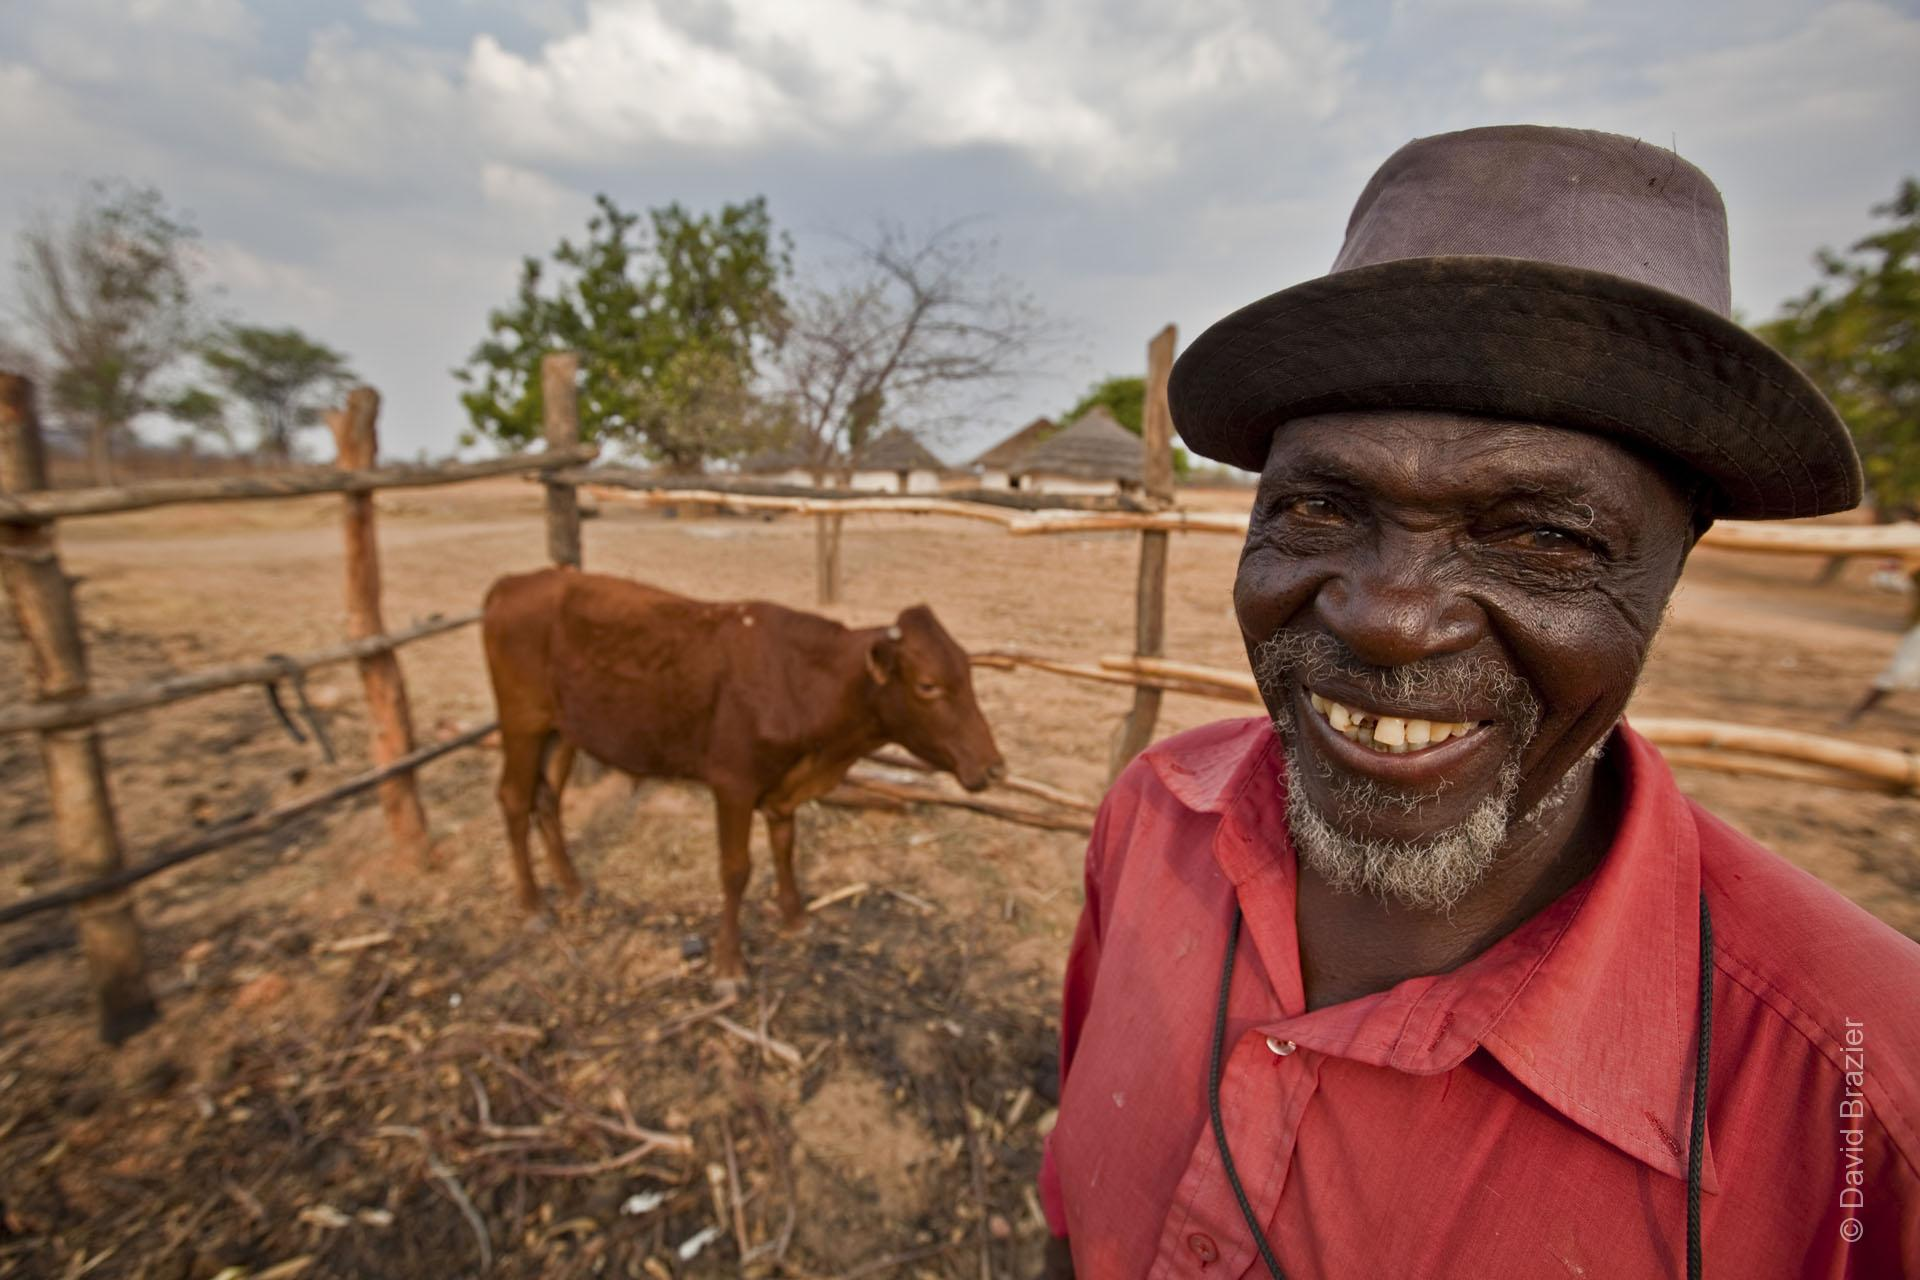 Elderly African man standing and smiling in cattle kraal with his brown cow